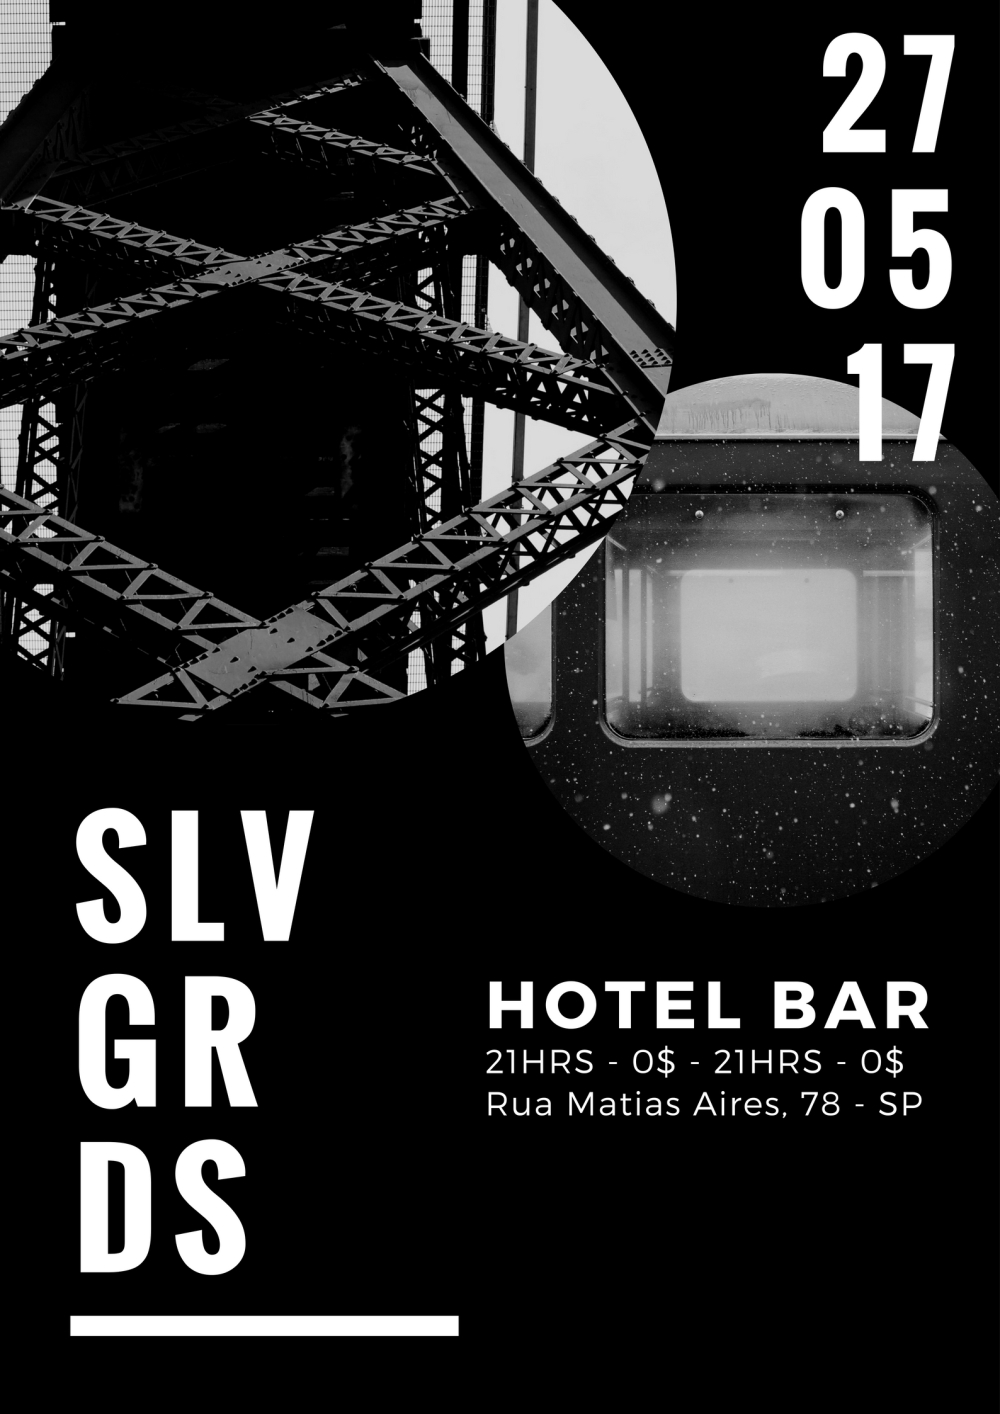 SLVGRDS@hotelbar